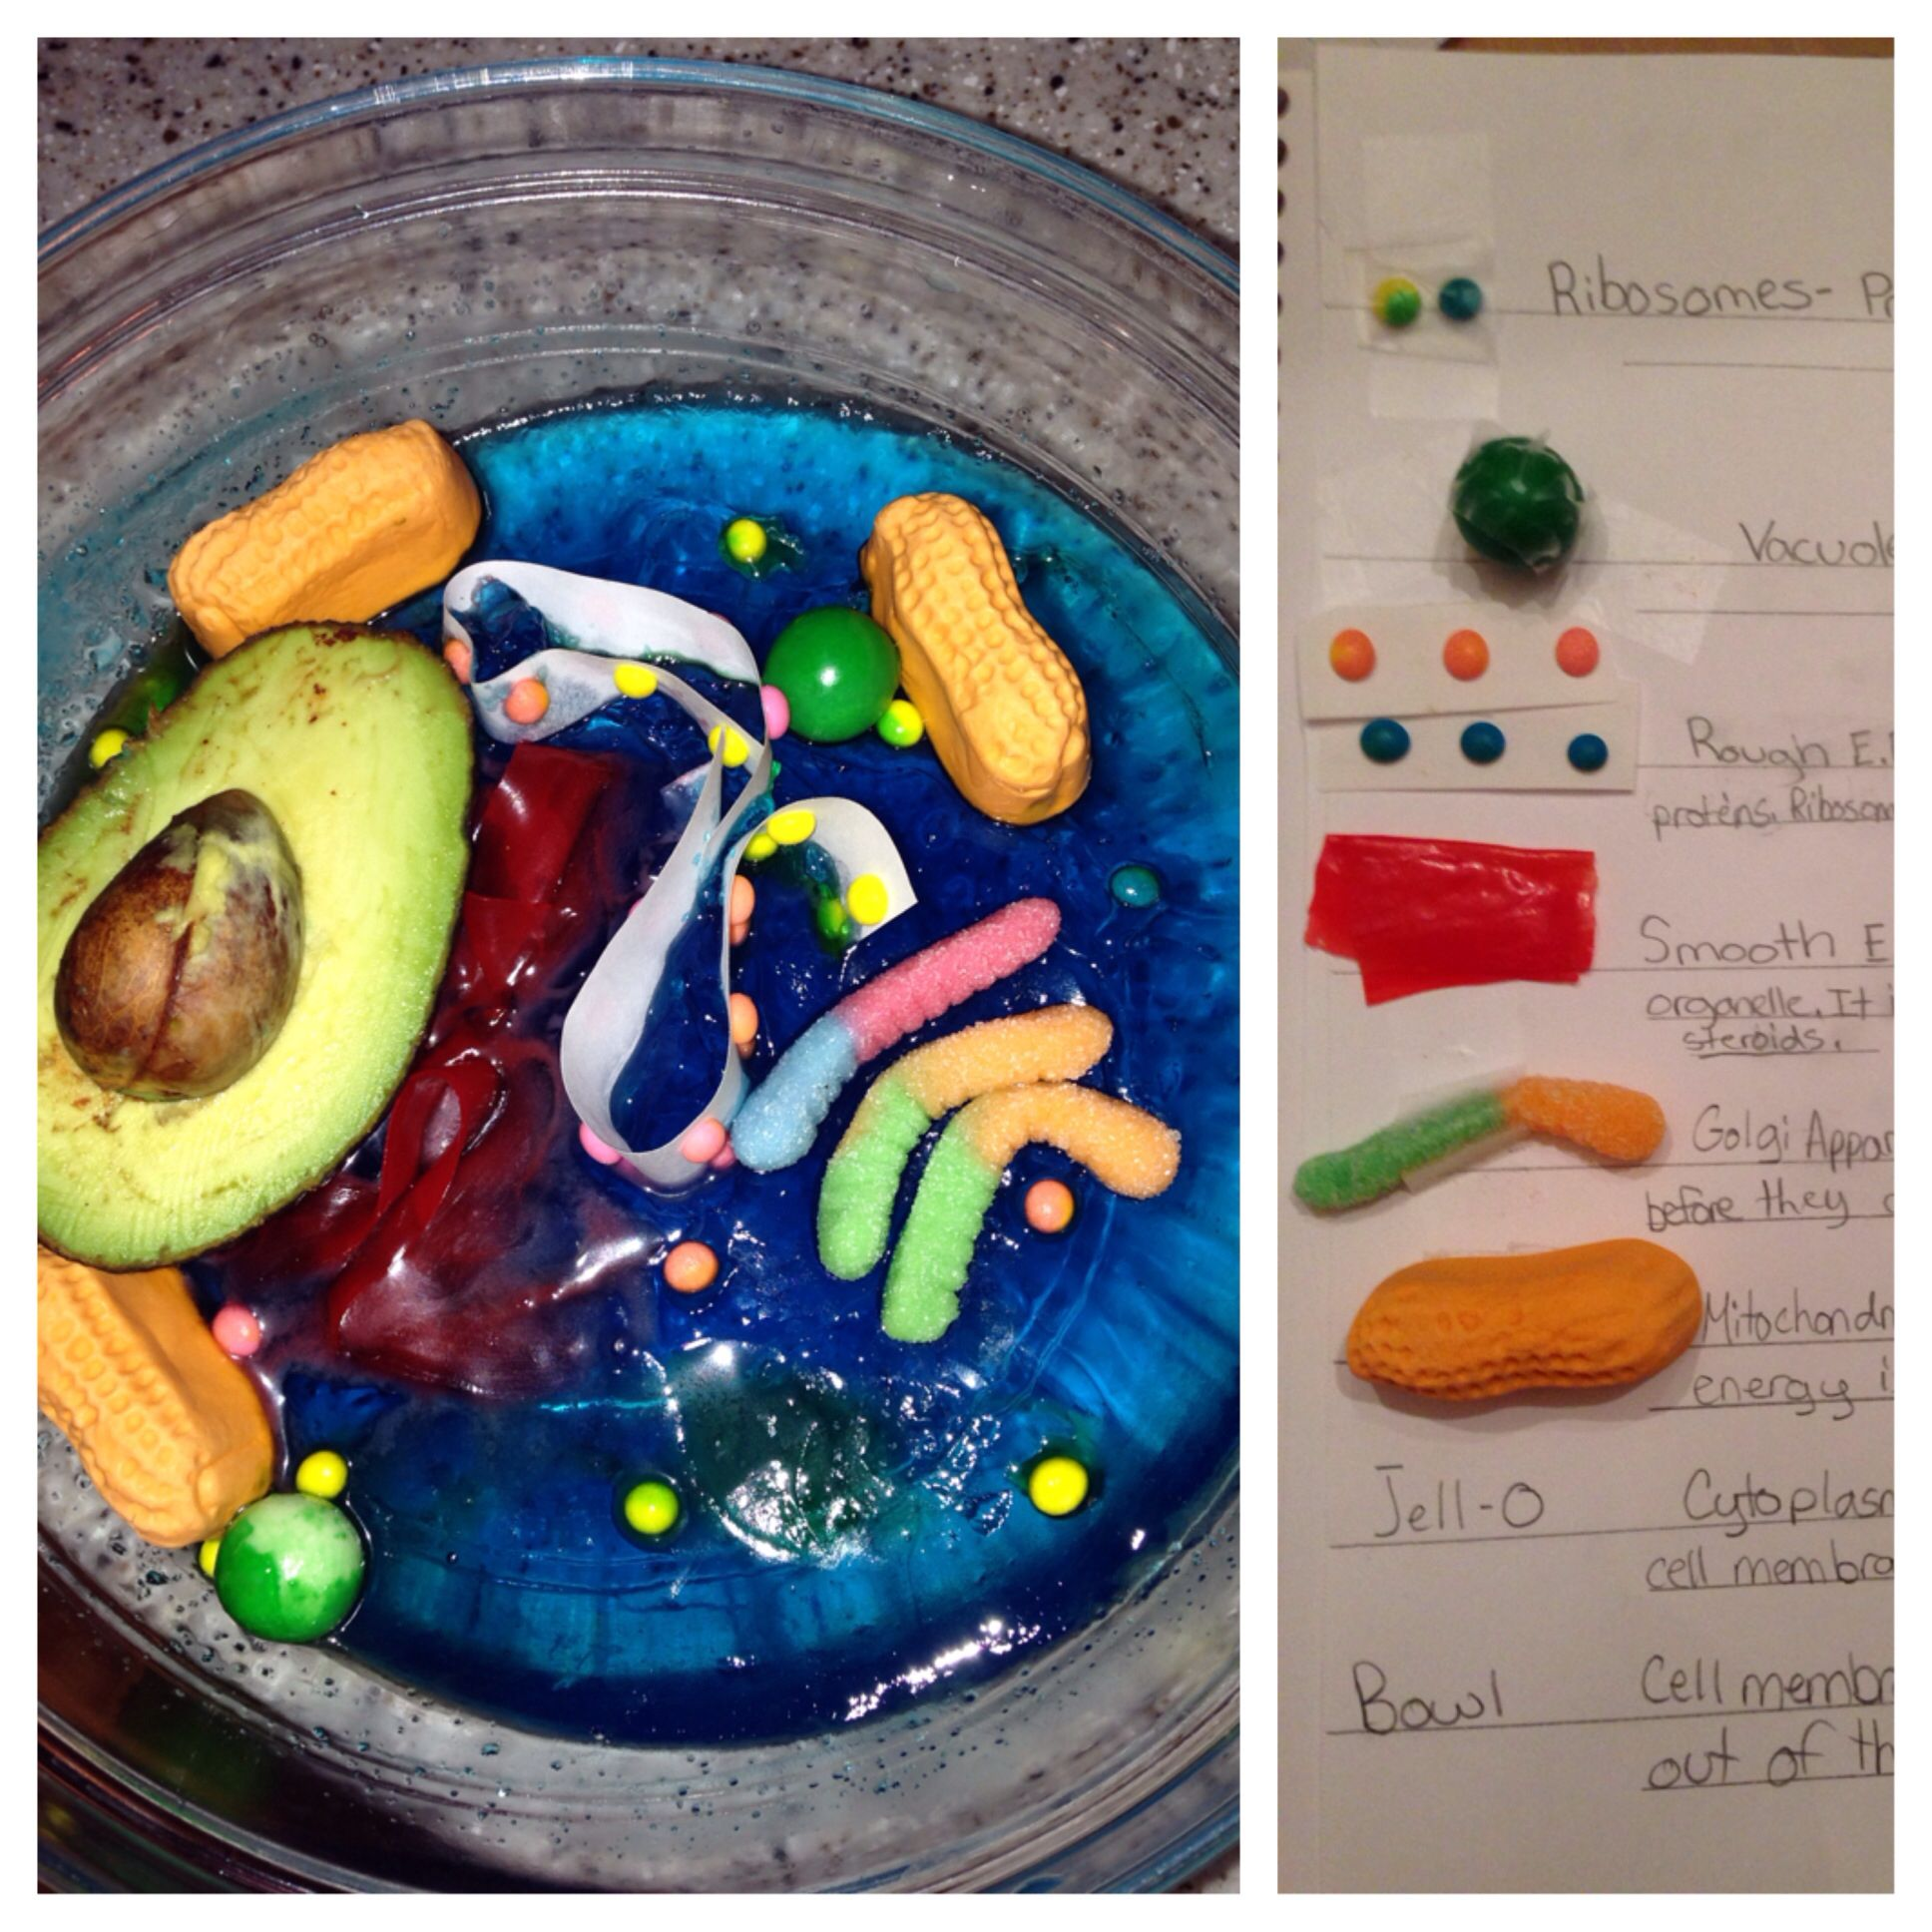 edible animal cell project instructions